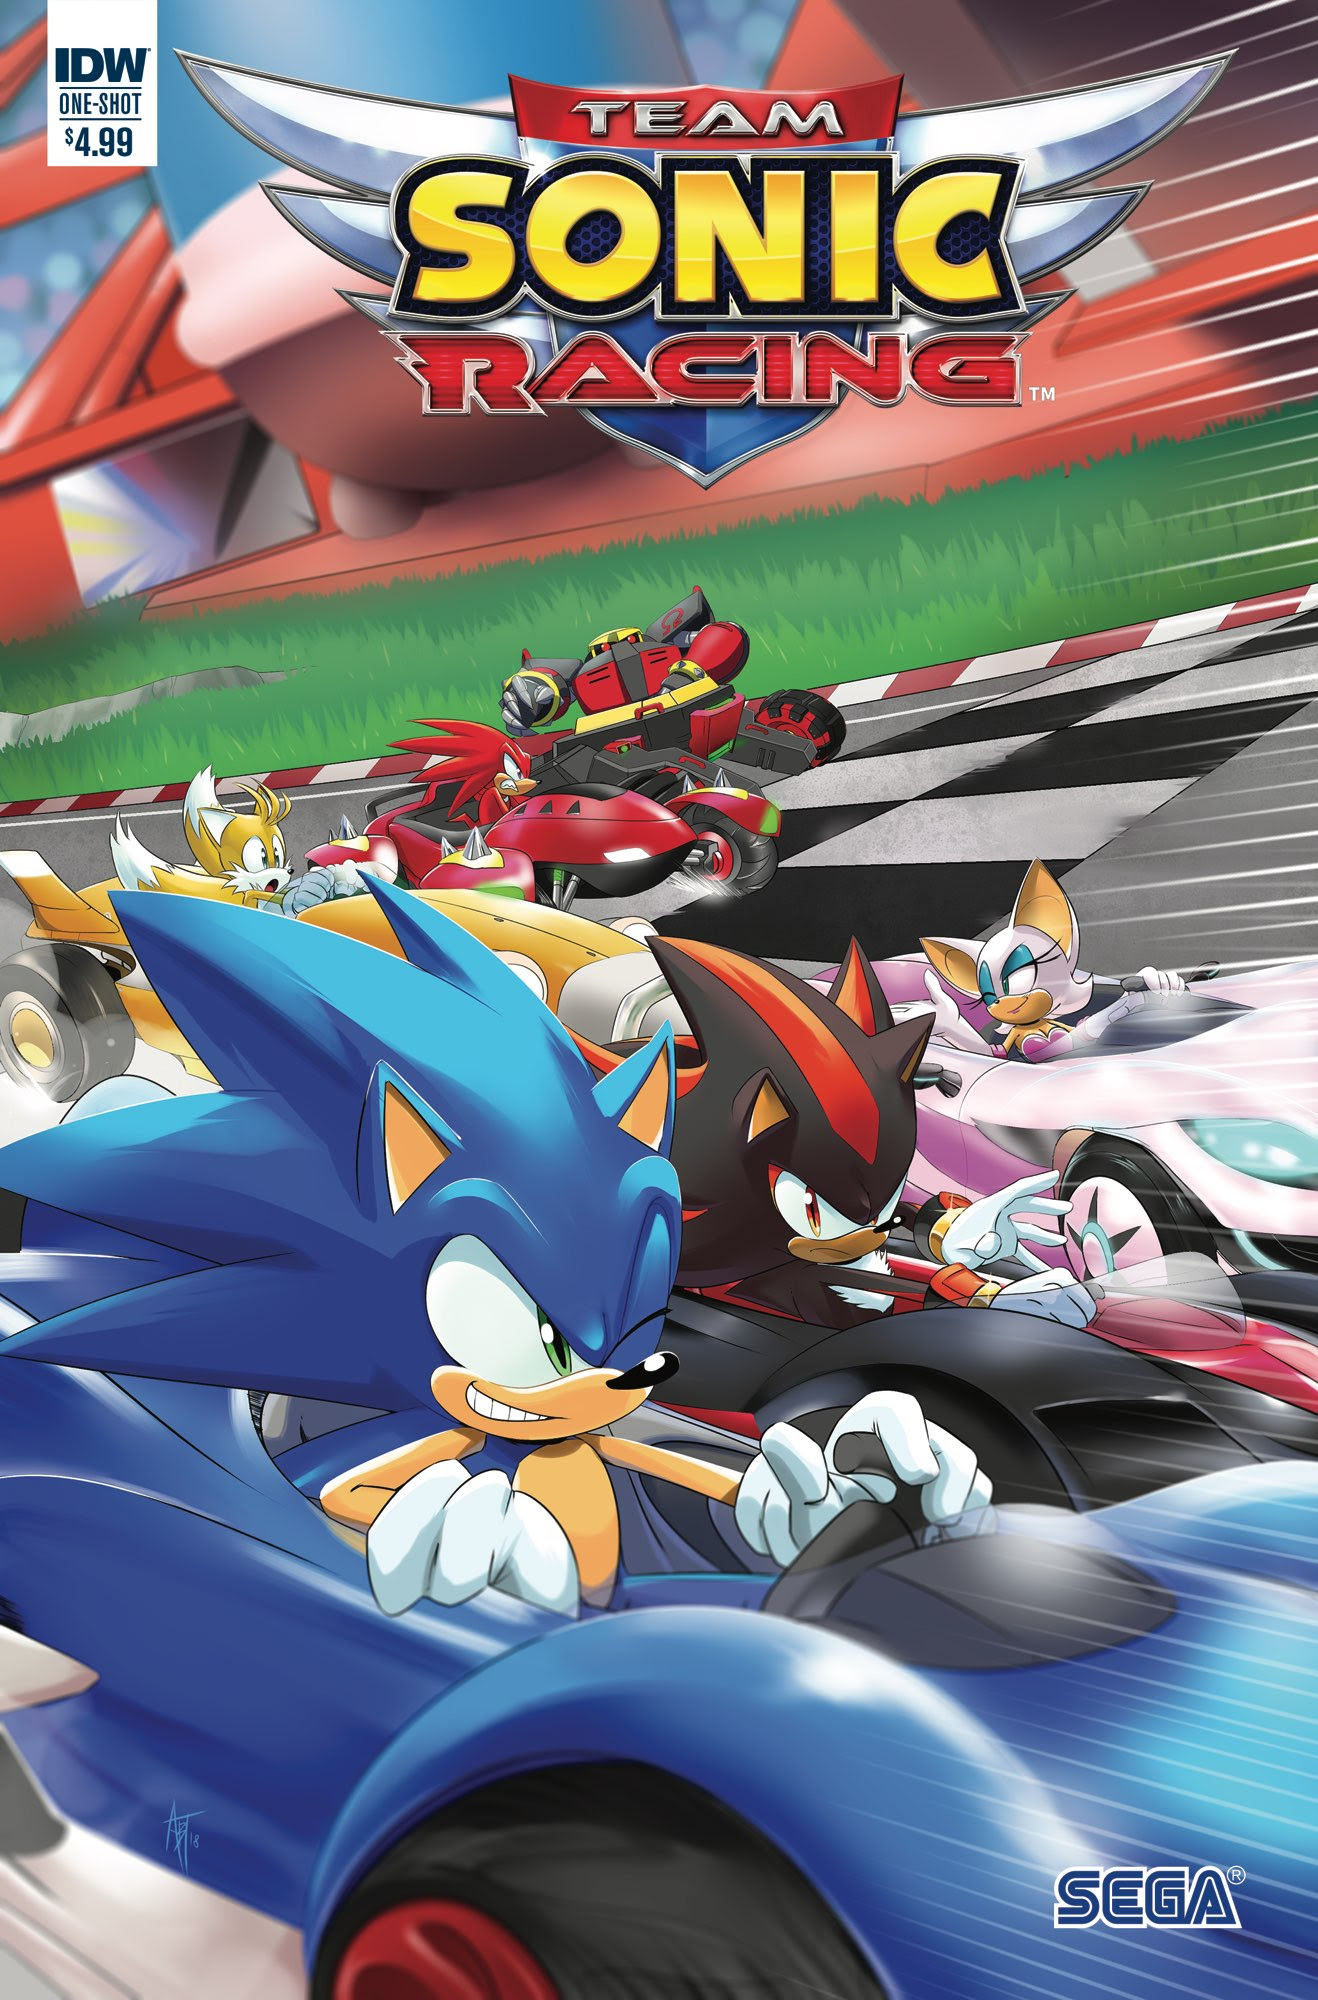 sdcc 2018 team sonic racing comic coming this year from idw